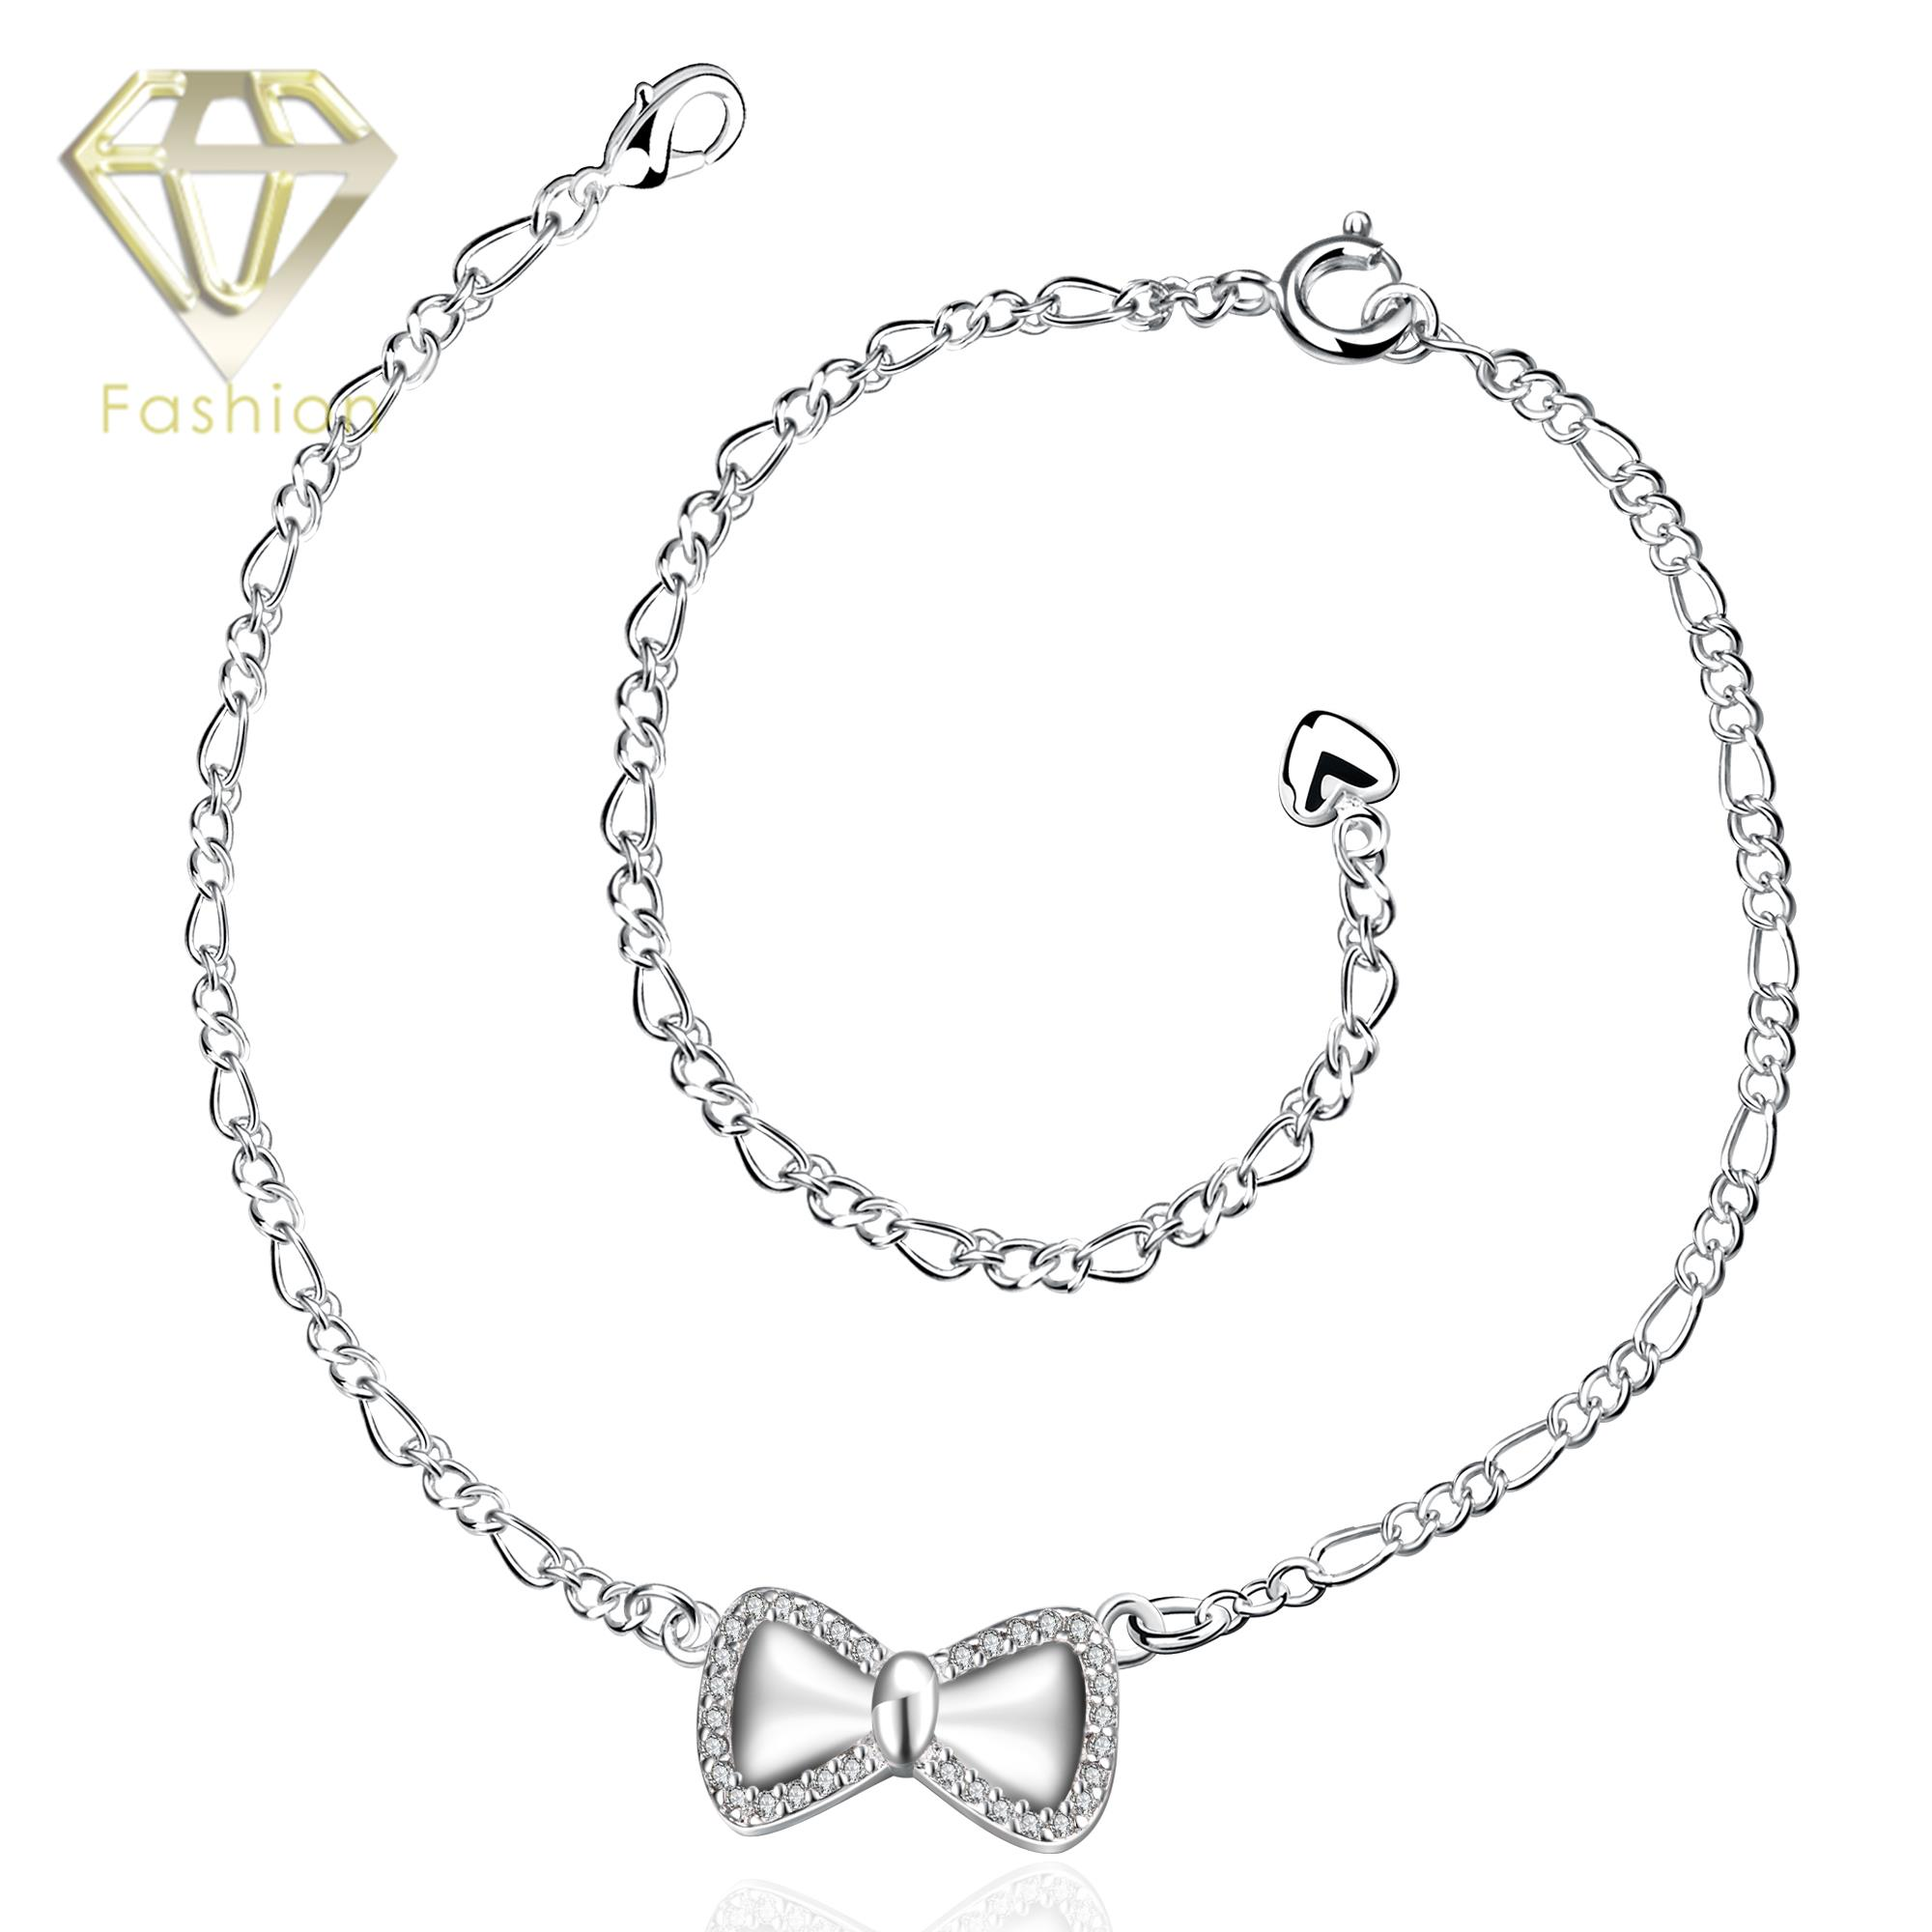 brilliant adorned heart designed inlays bracelet zirconia cubic clear crafted ca details silver this romantic and clr expert classic sterling with in polished is by shaped anklets hand products link ankle anklet a chain